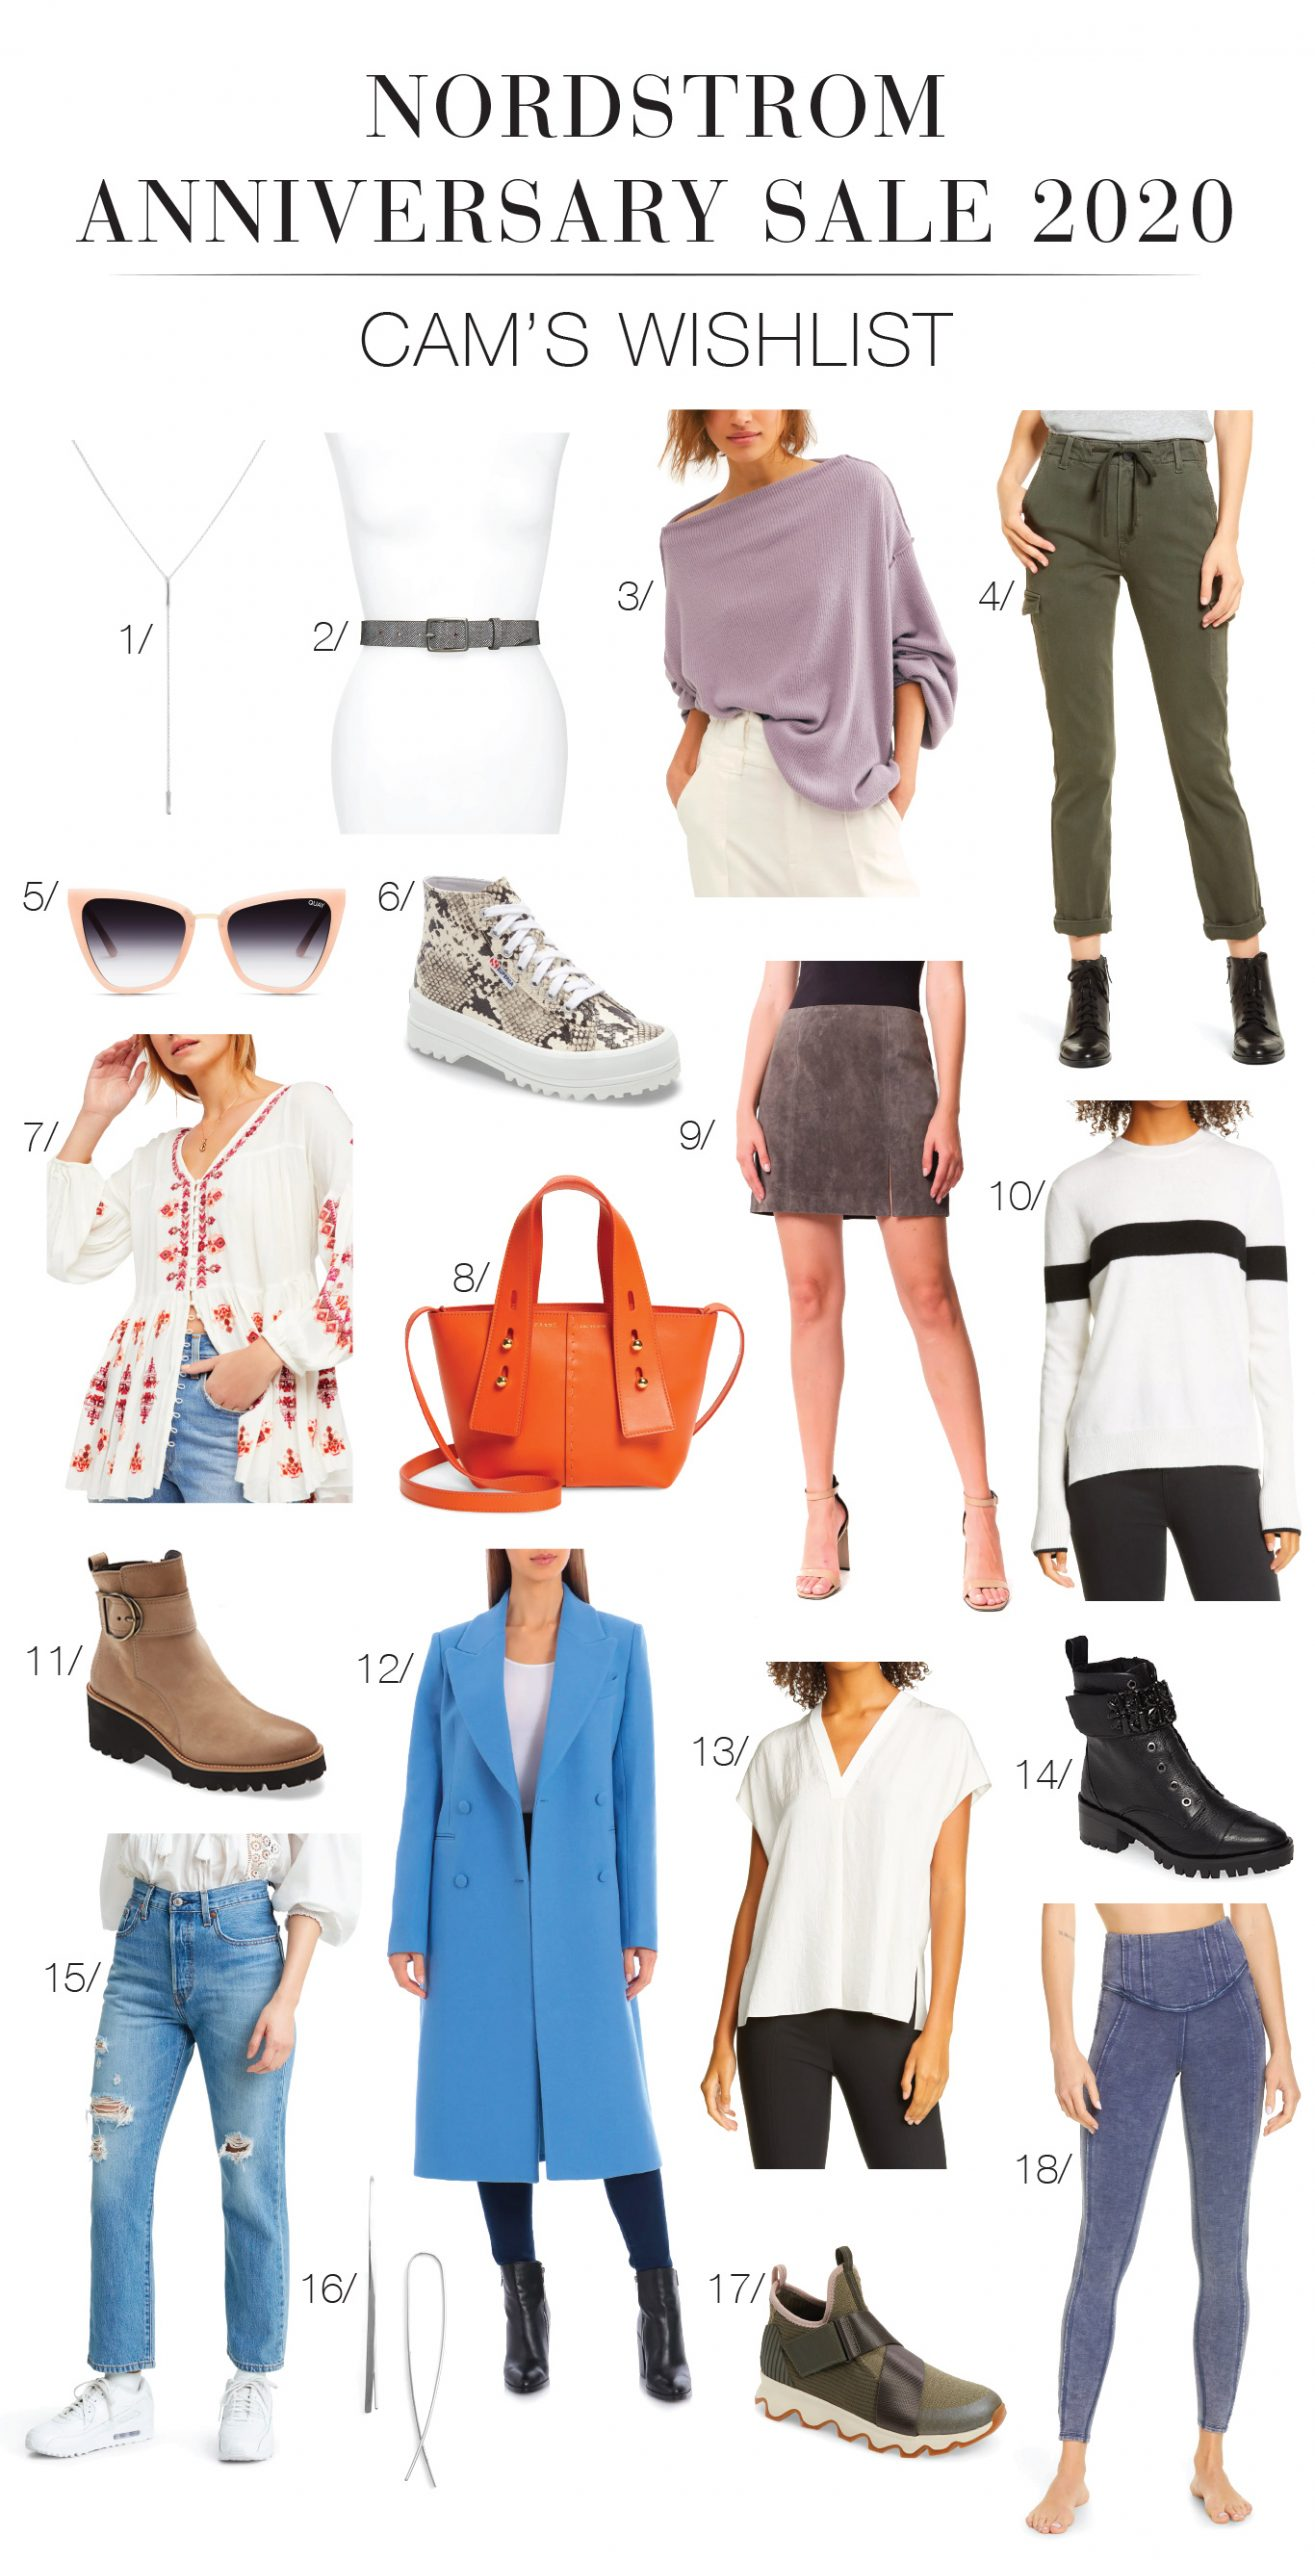 I spy w/ my li'l eye a seriously good FRAME crossbody bag, a double-breasted wool blend coat & killer platform boots. Nordstrom Anniversary Sale — let's shop!